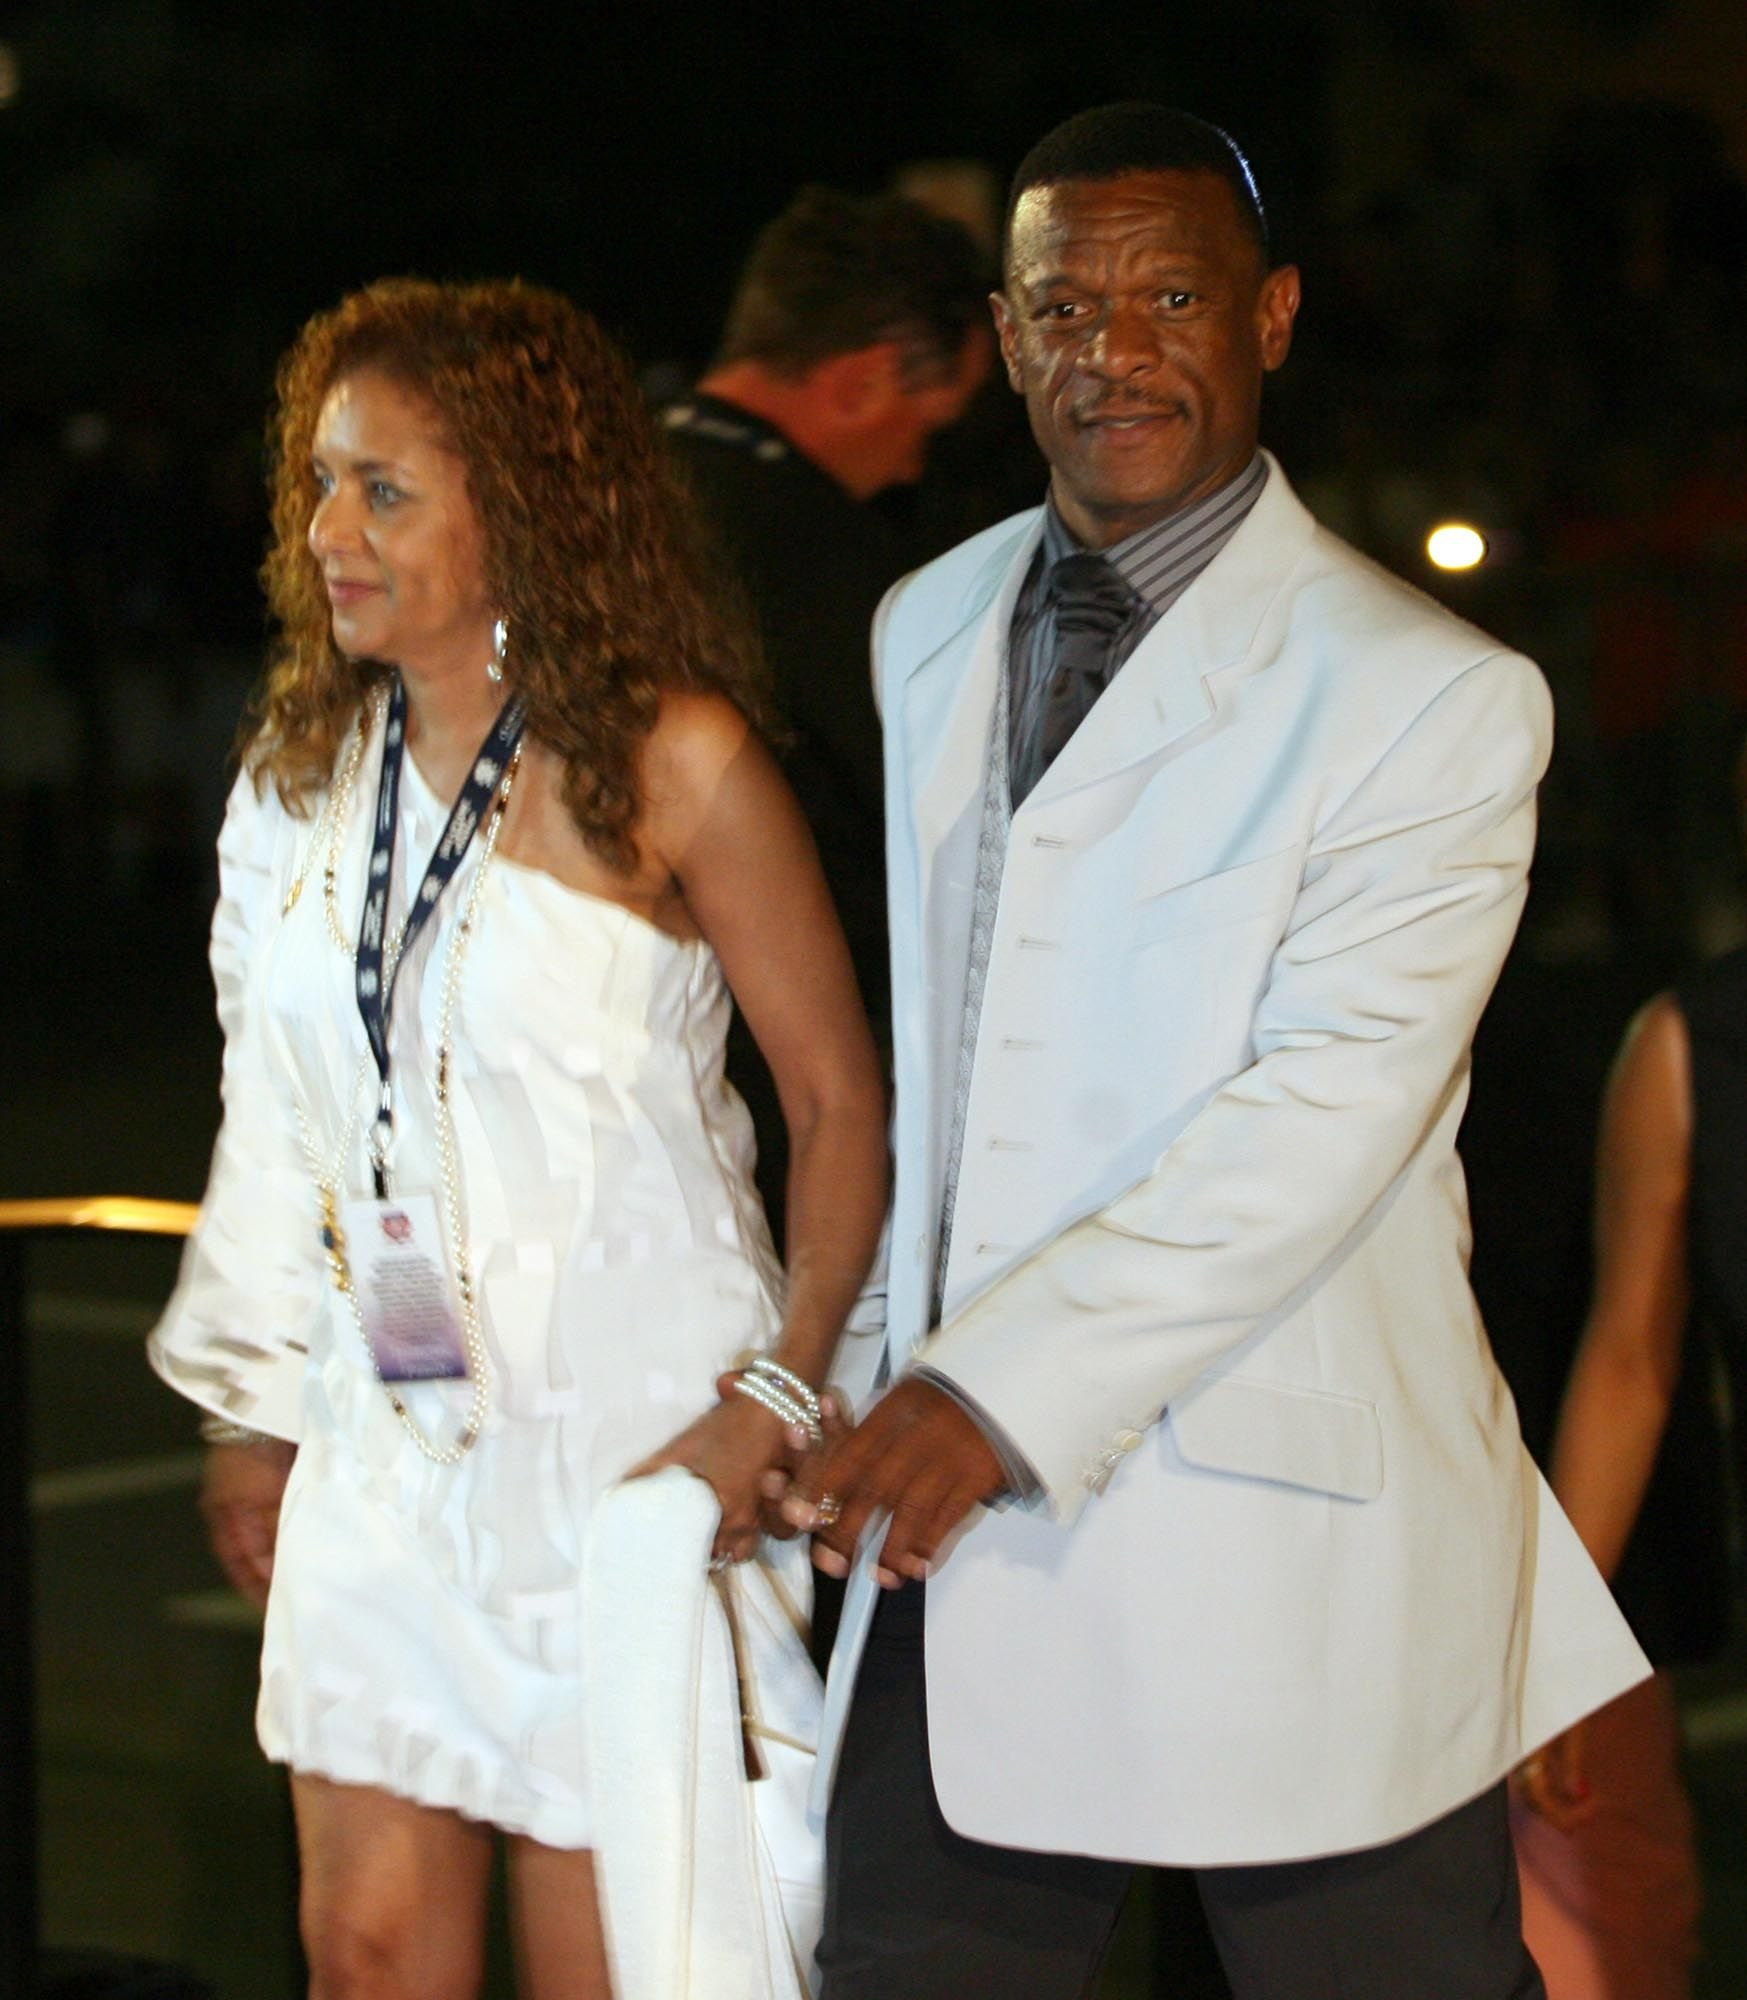 Rickey Henderson attending an event with his wife Pamela | Source: Getty Images